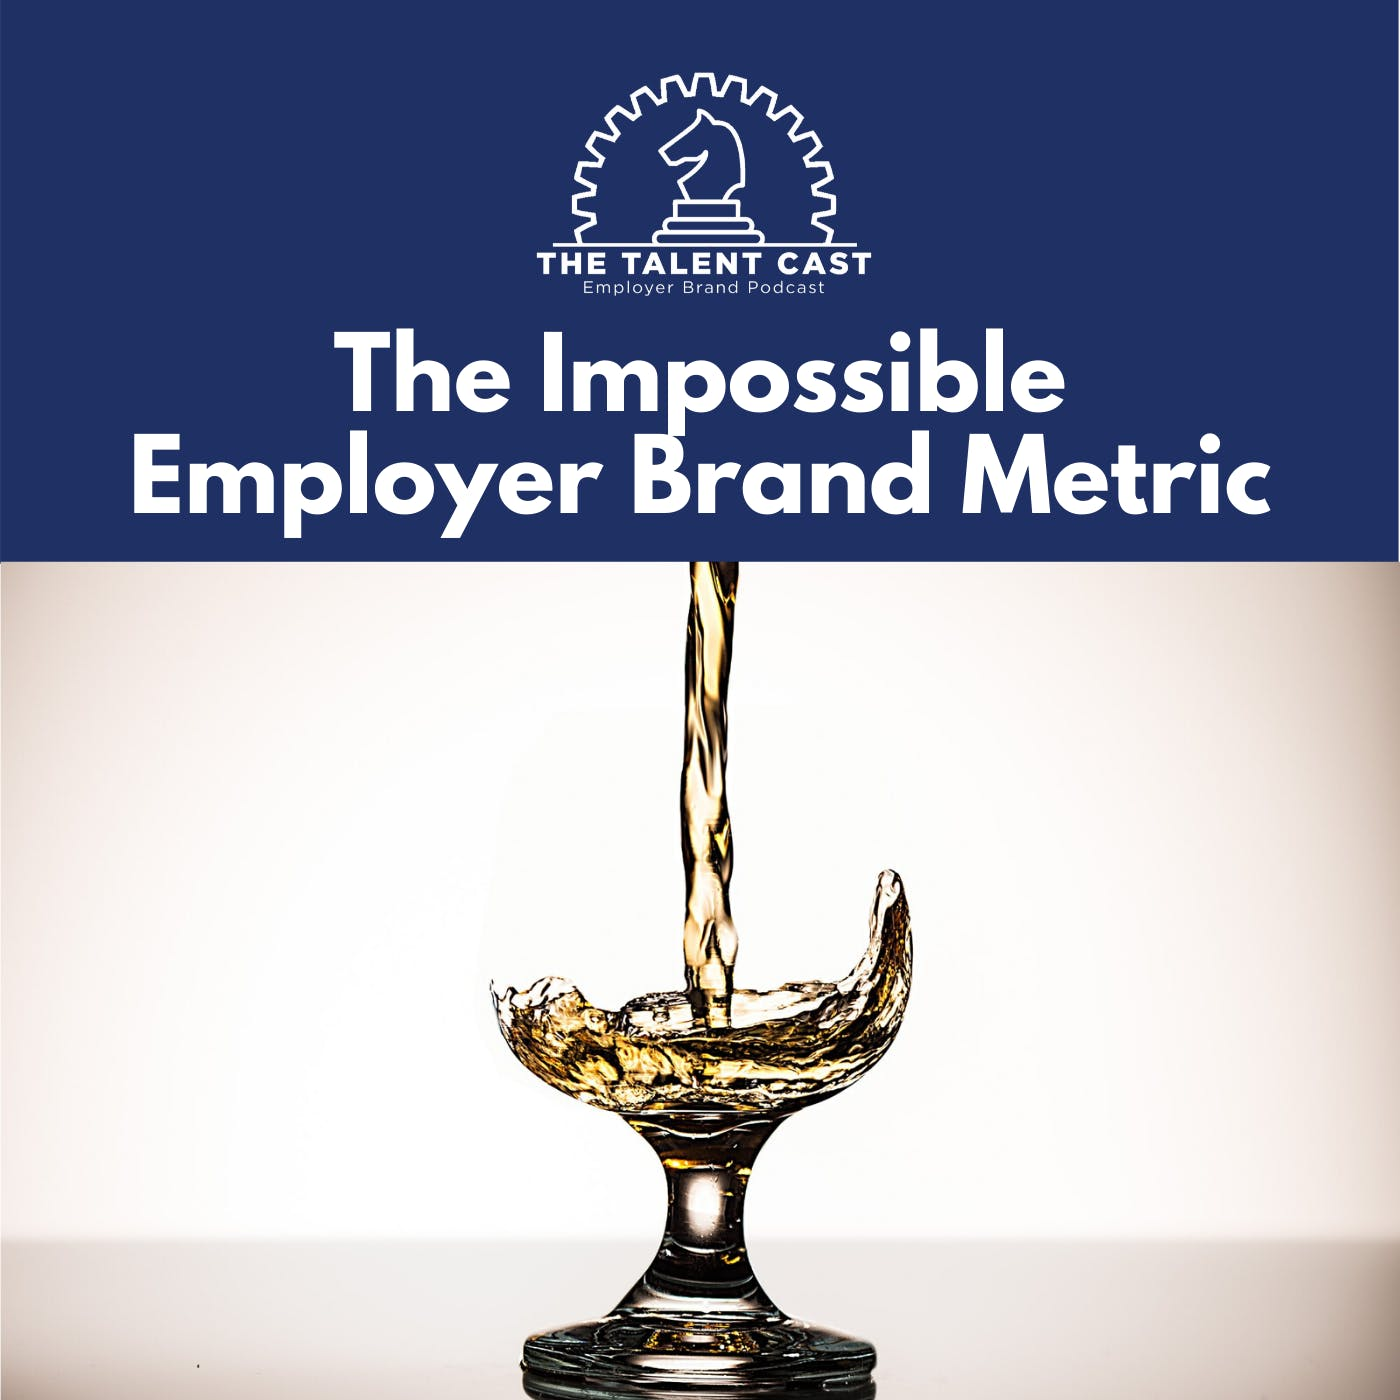 The Impossible Employer Brand Metric